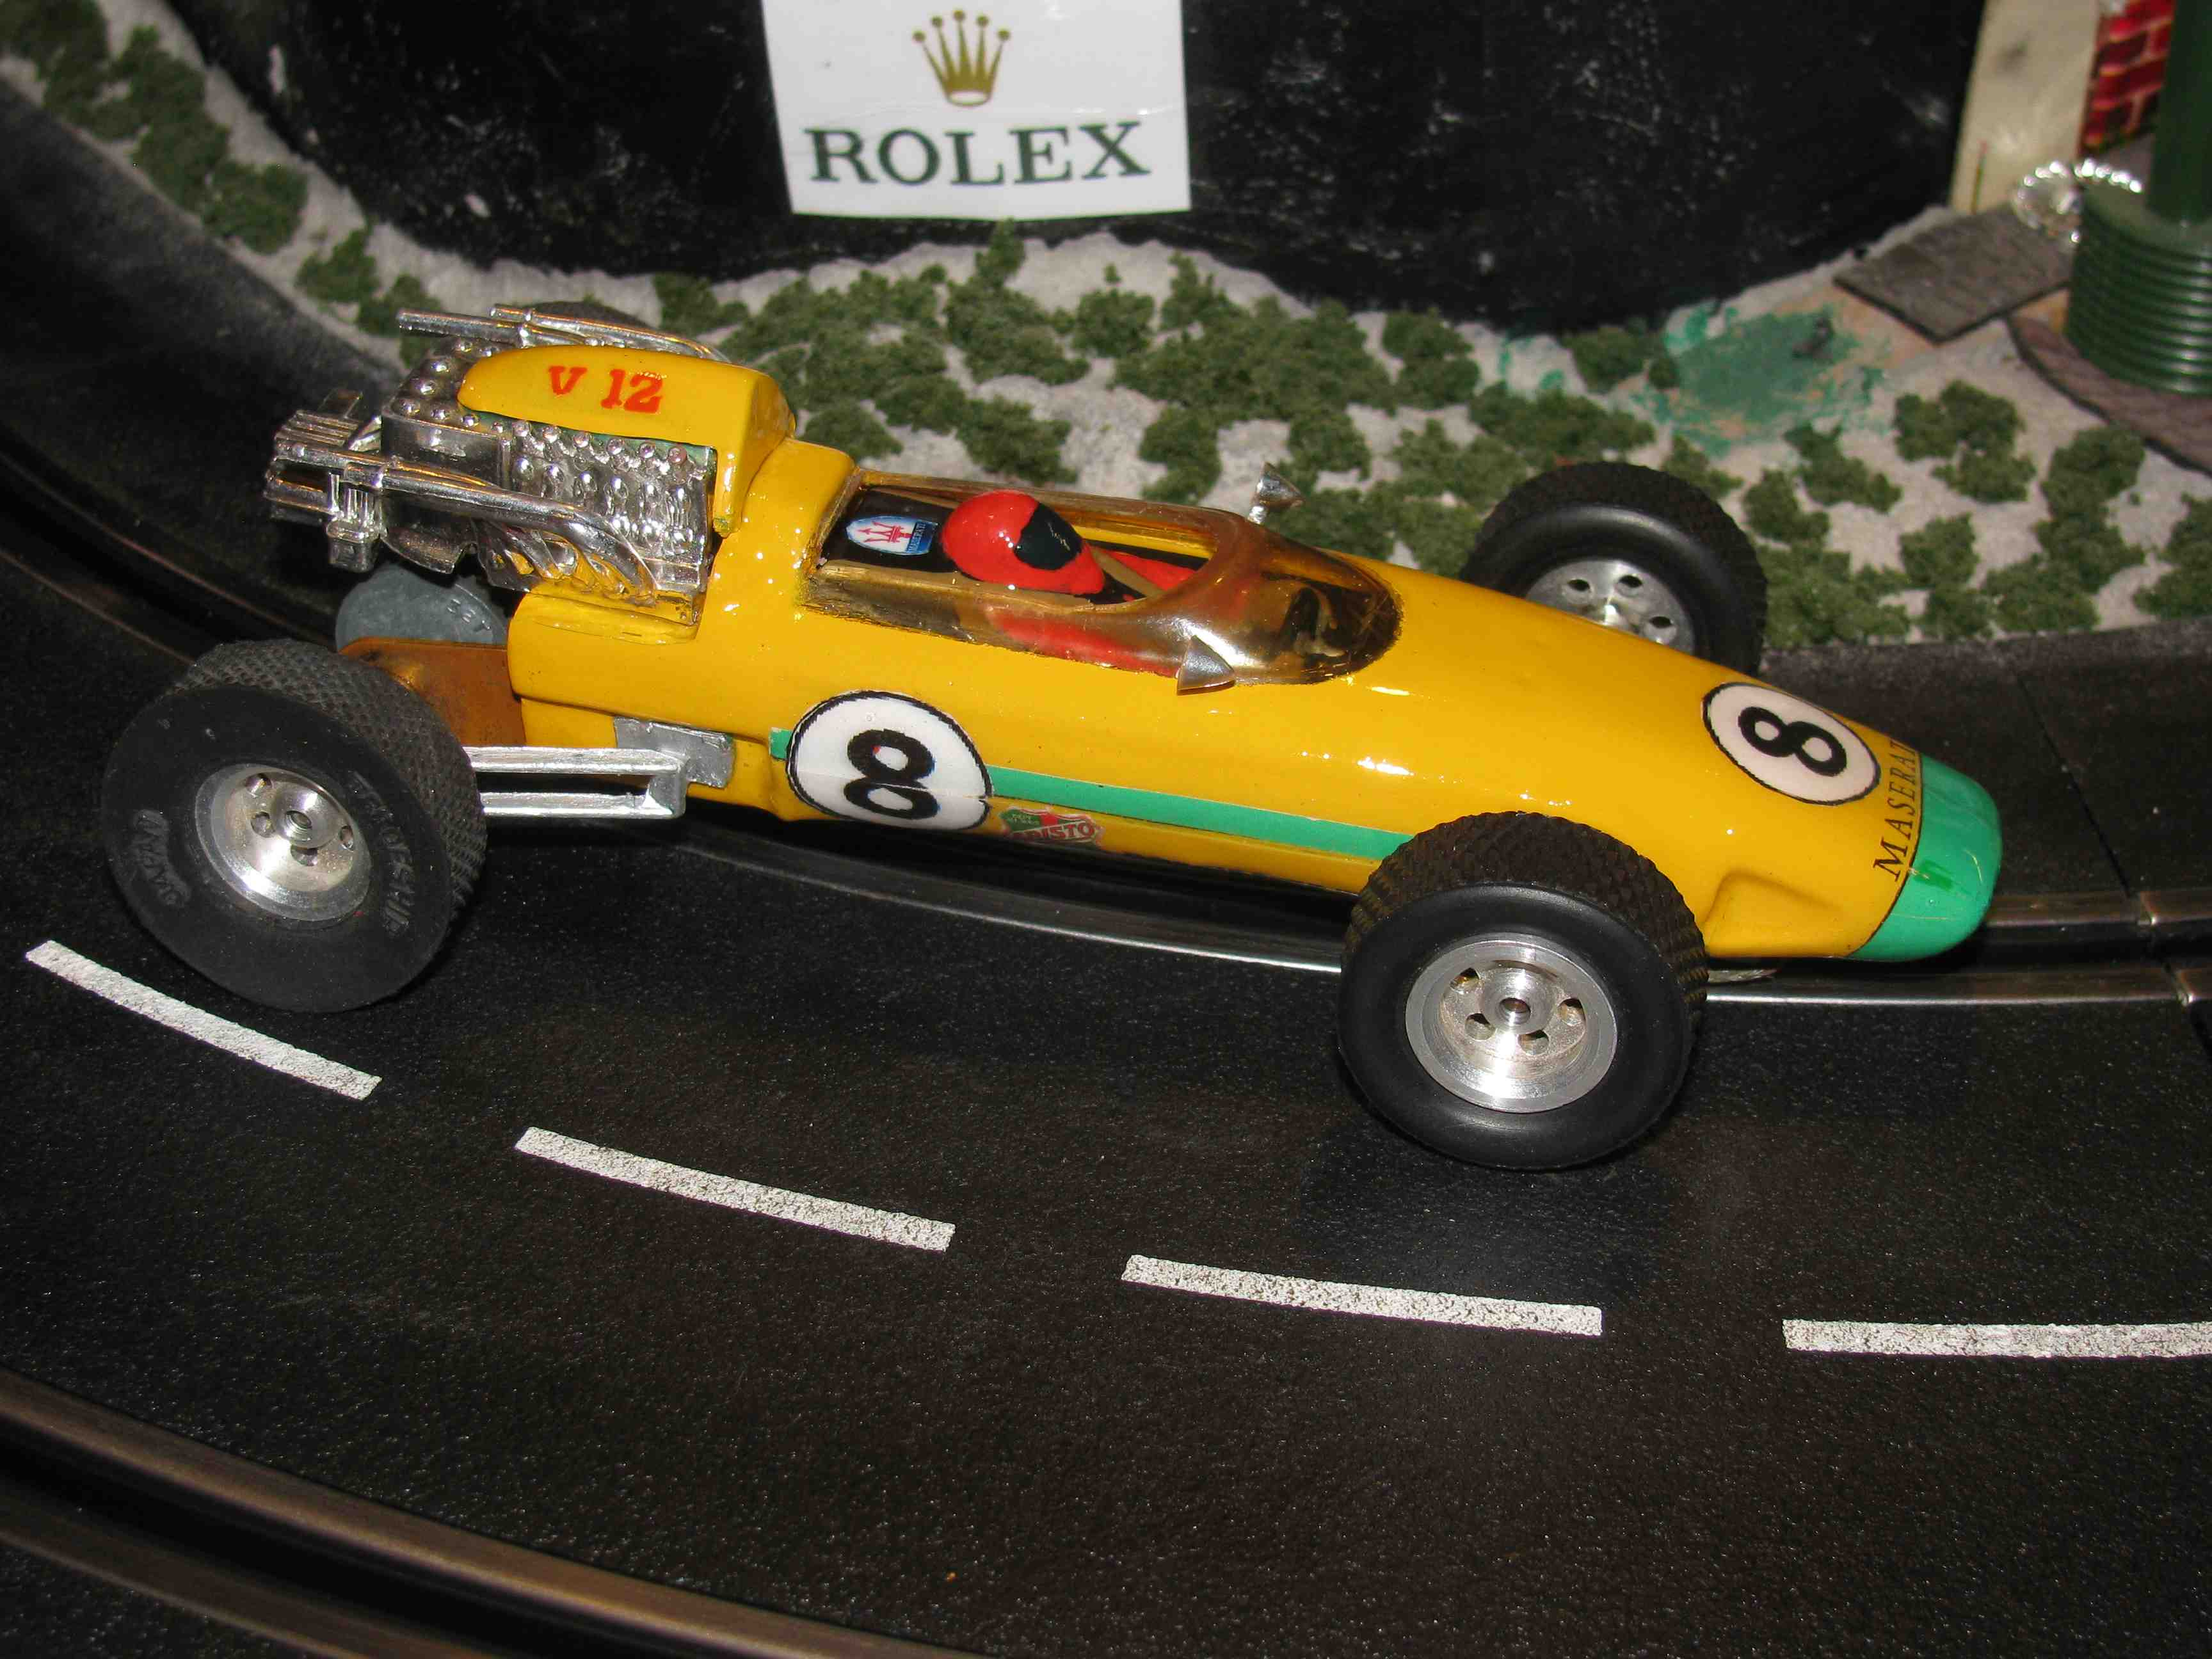 * SOLD * Maserati Formula One V-12 Slot Car 1/24 Scale - Yellow – Car #8